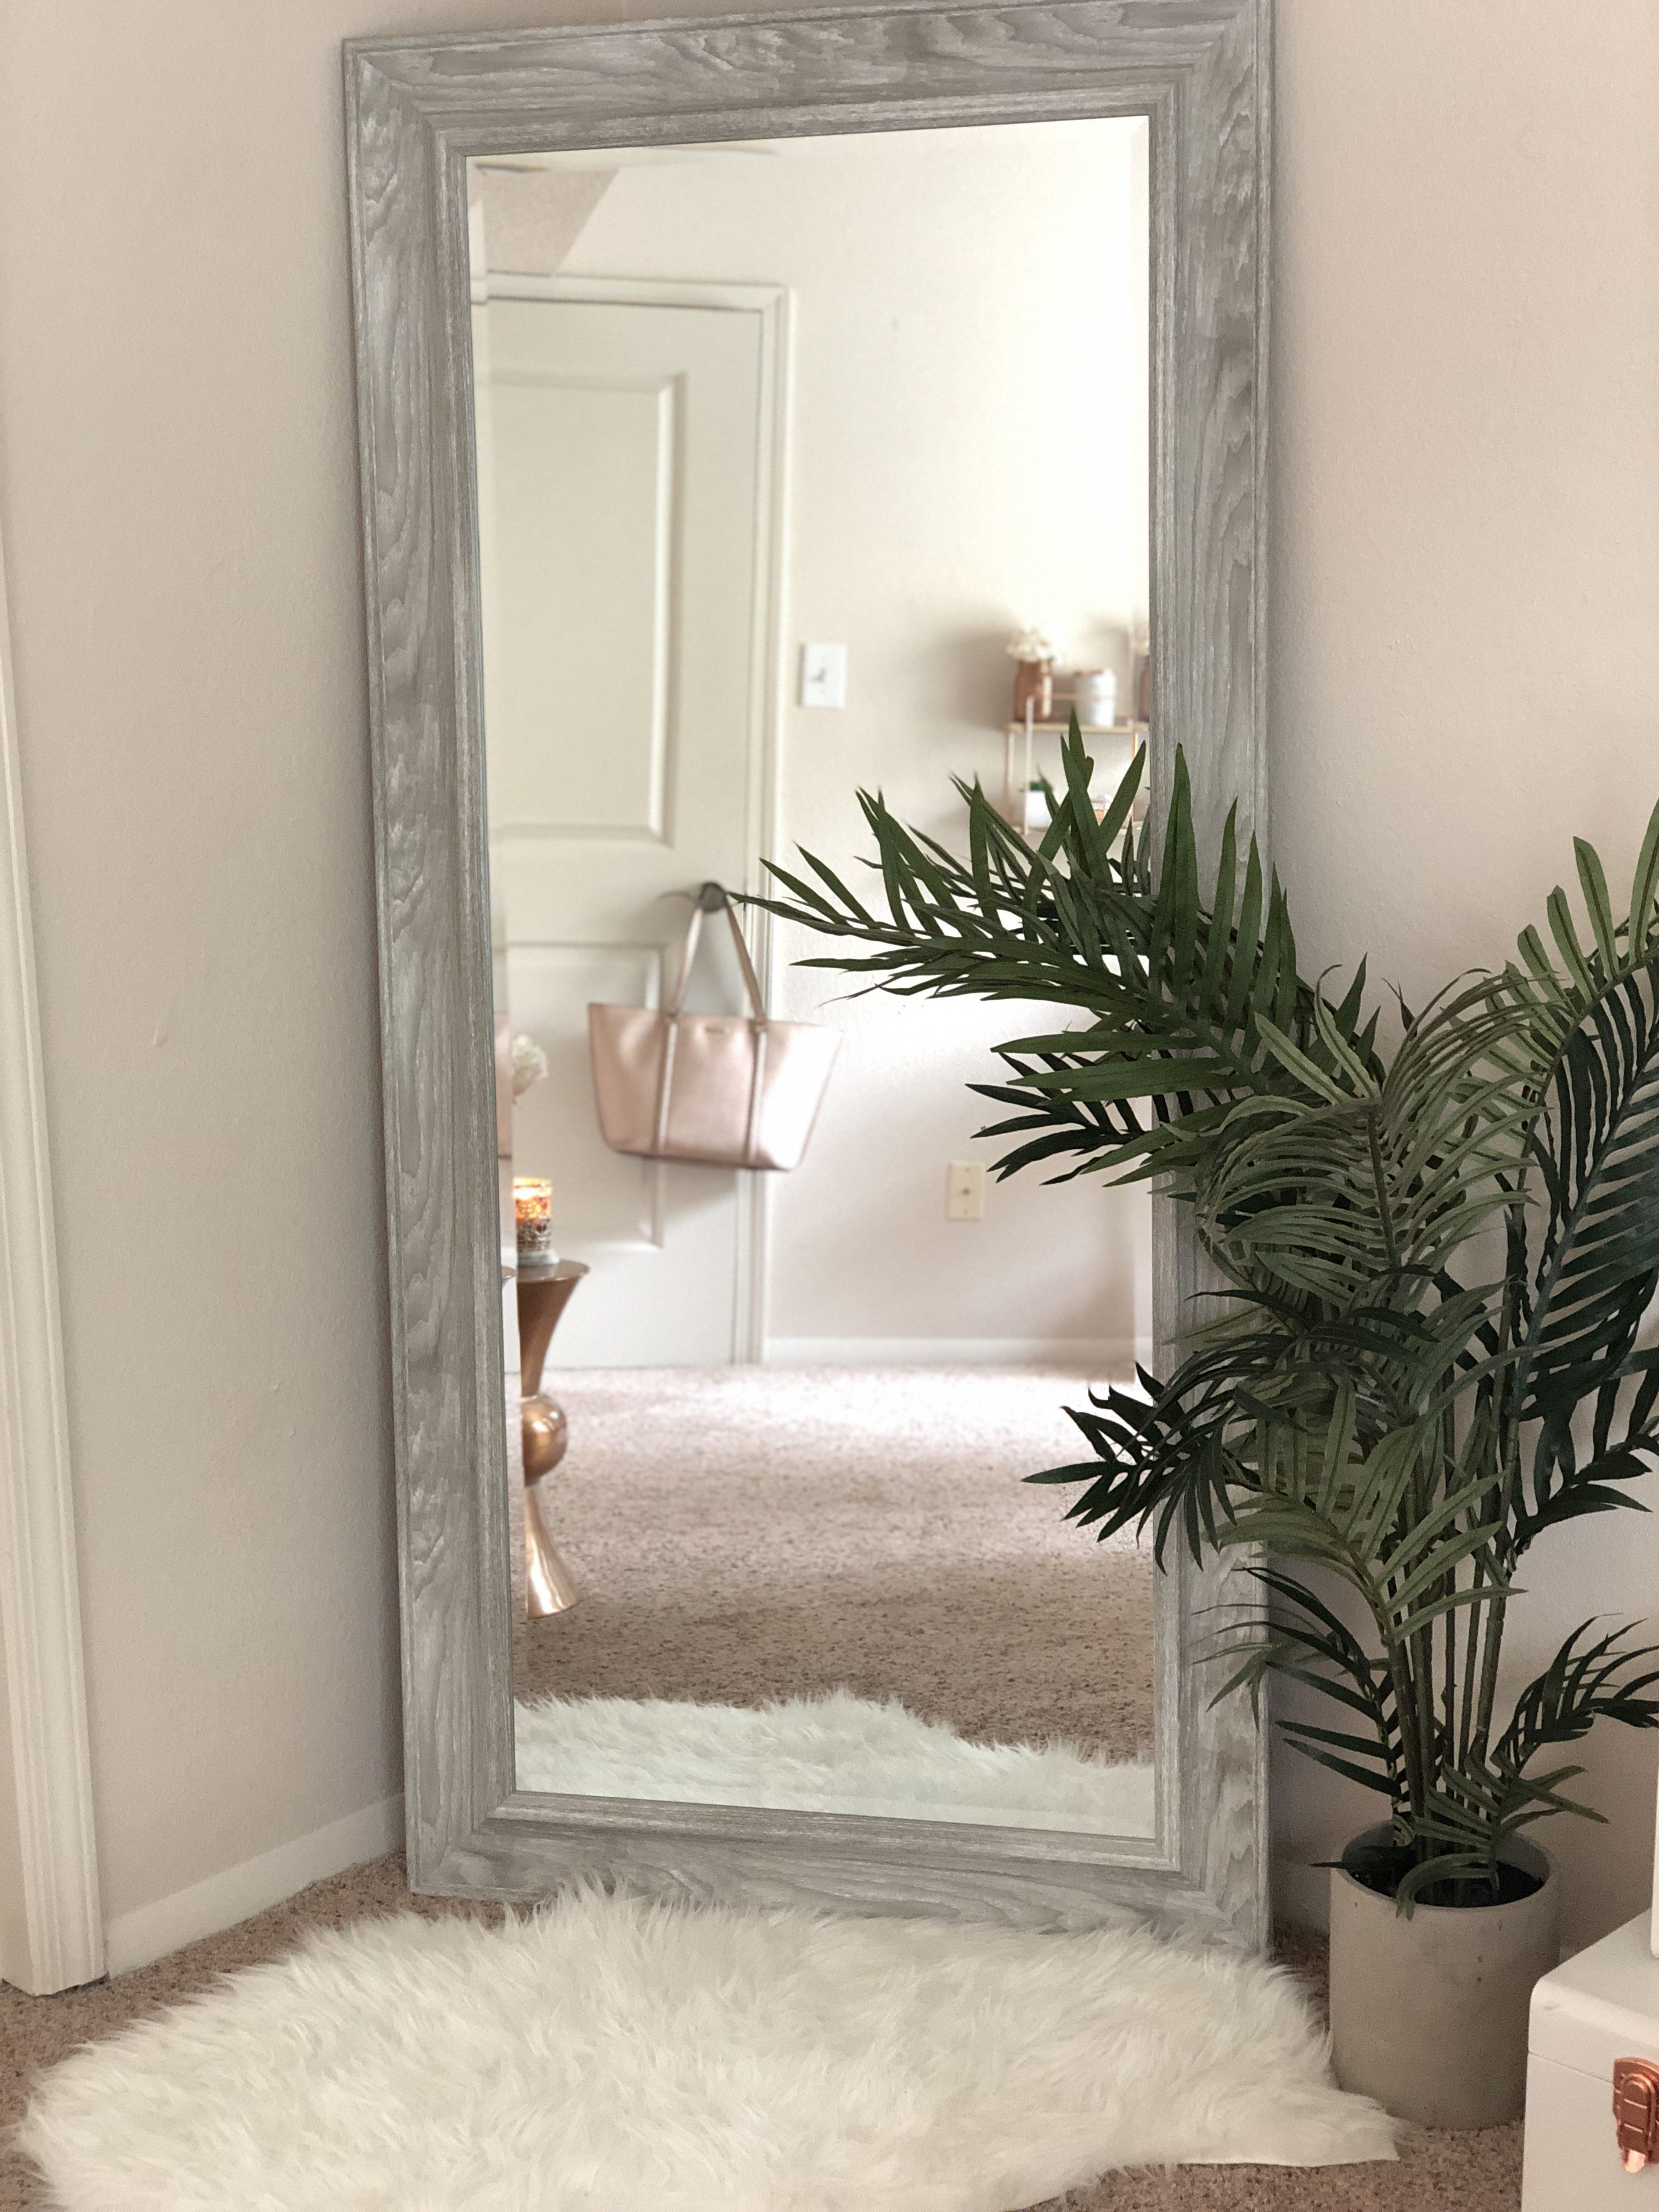 A Comprehensive Overview On Home Decoration In 2020 Big Mirror